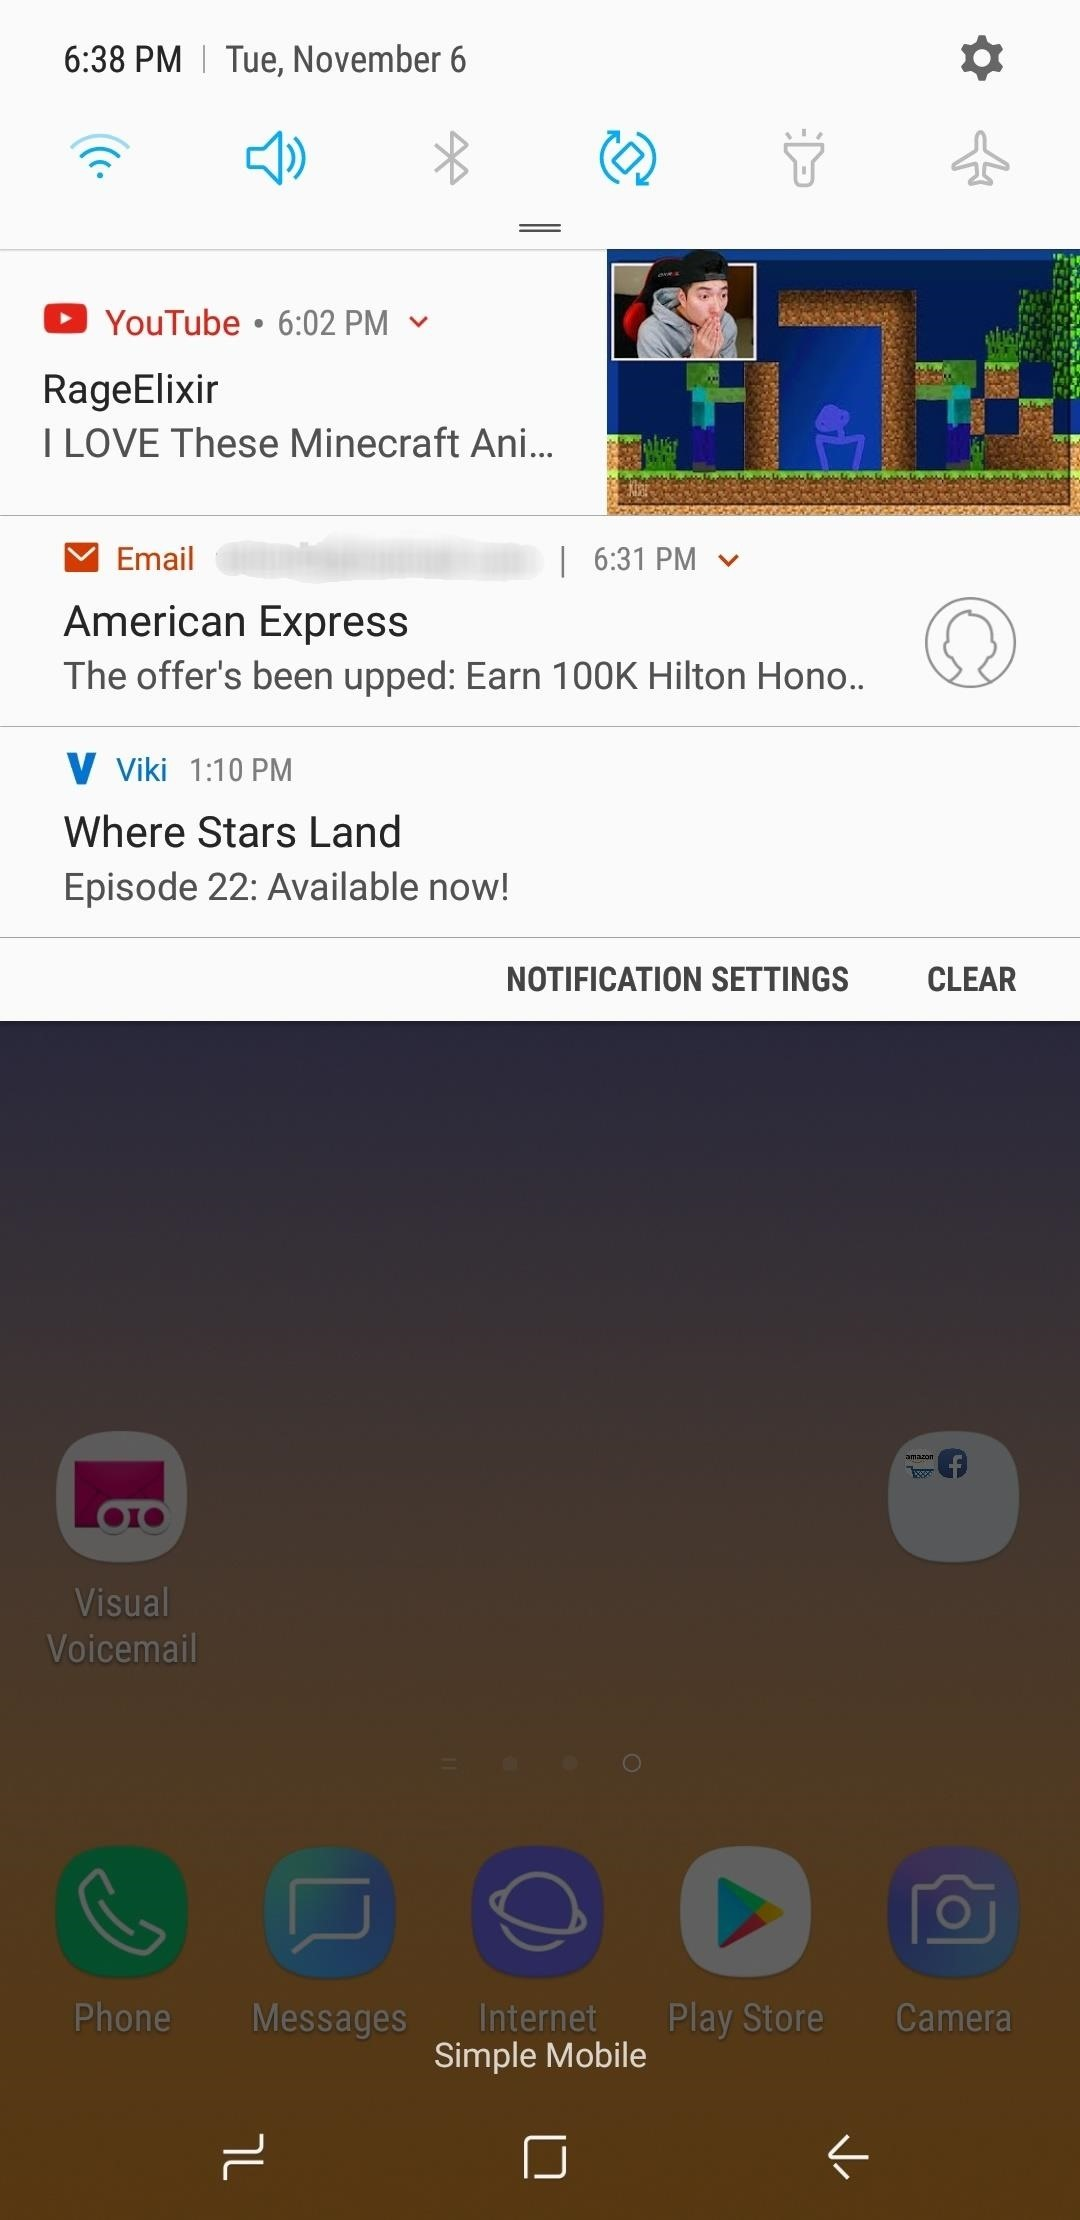 You're Going to Love the New Notifications in Samsung's One